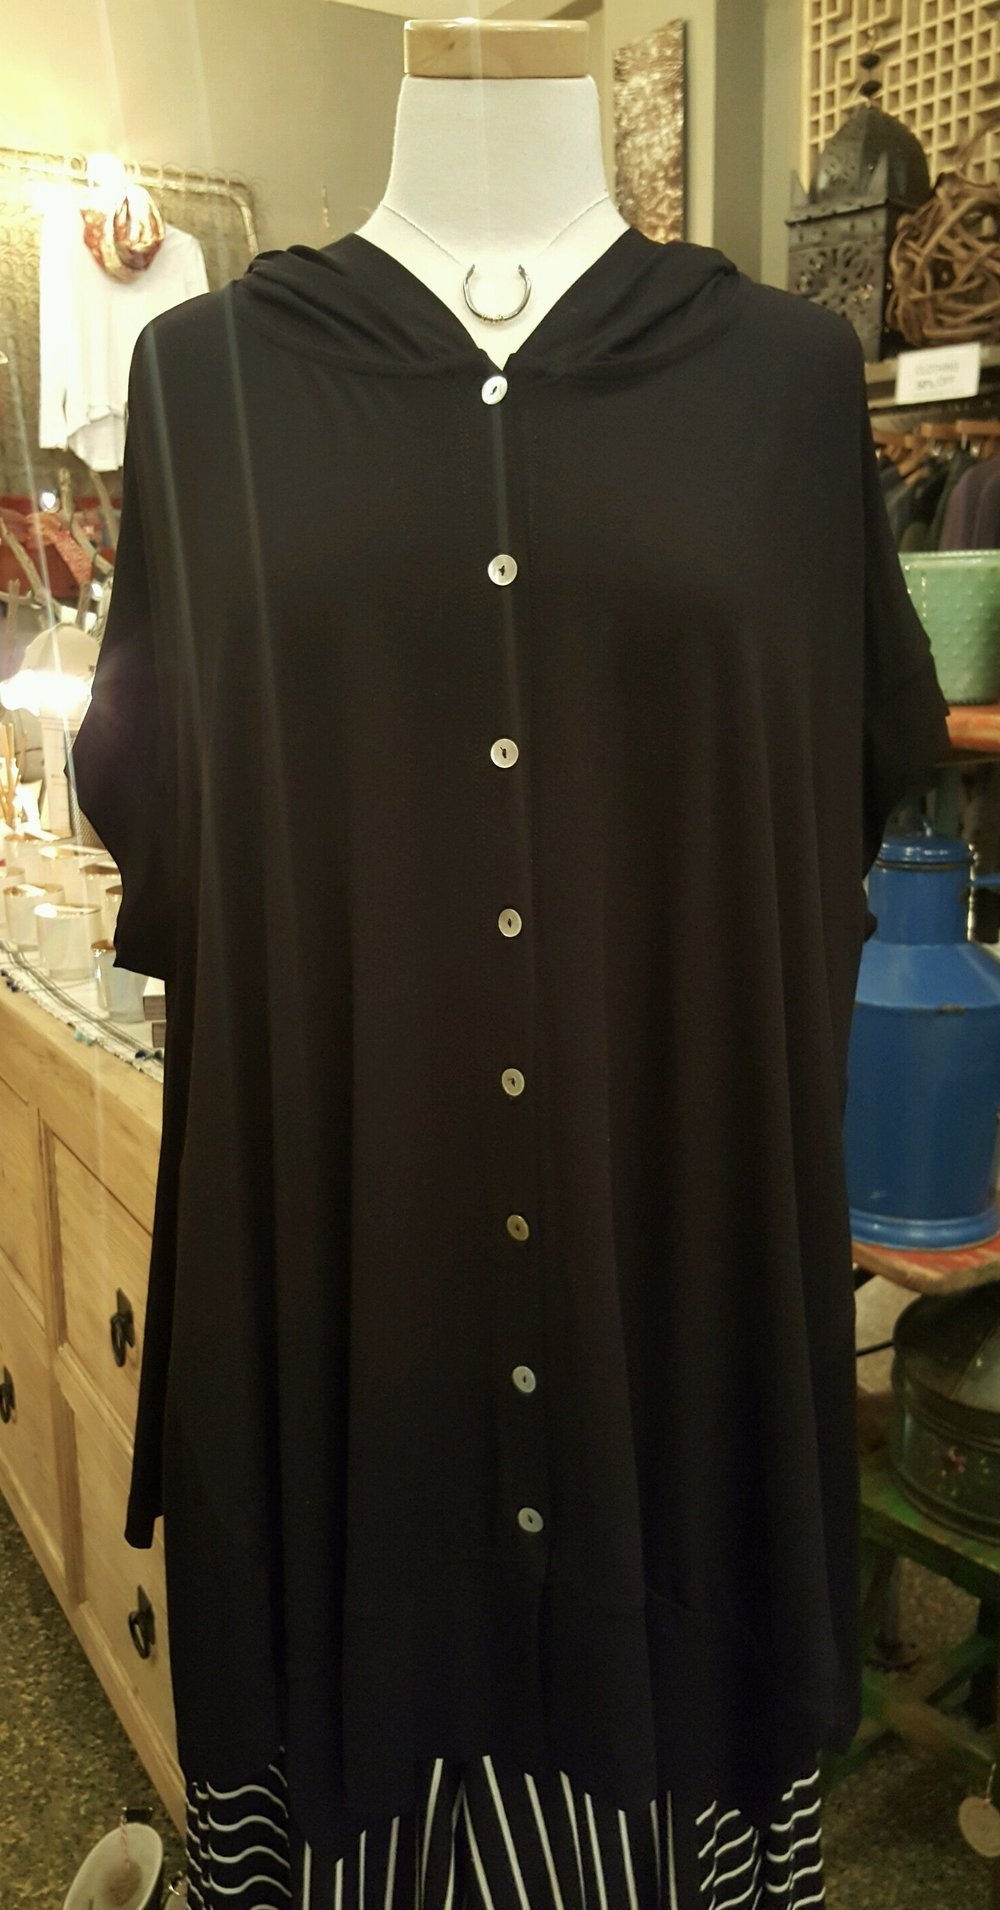 FullSizeRender_3 copy.jpg